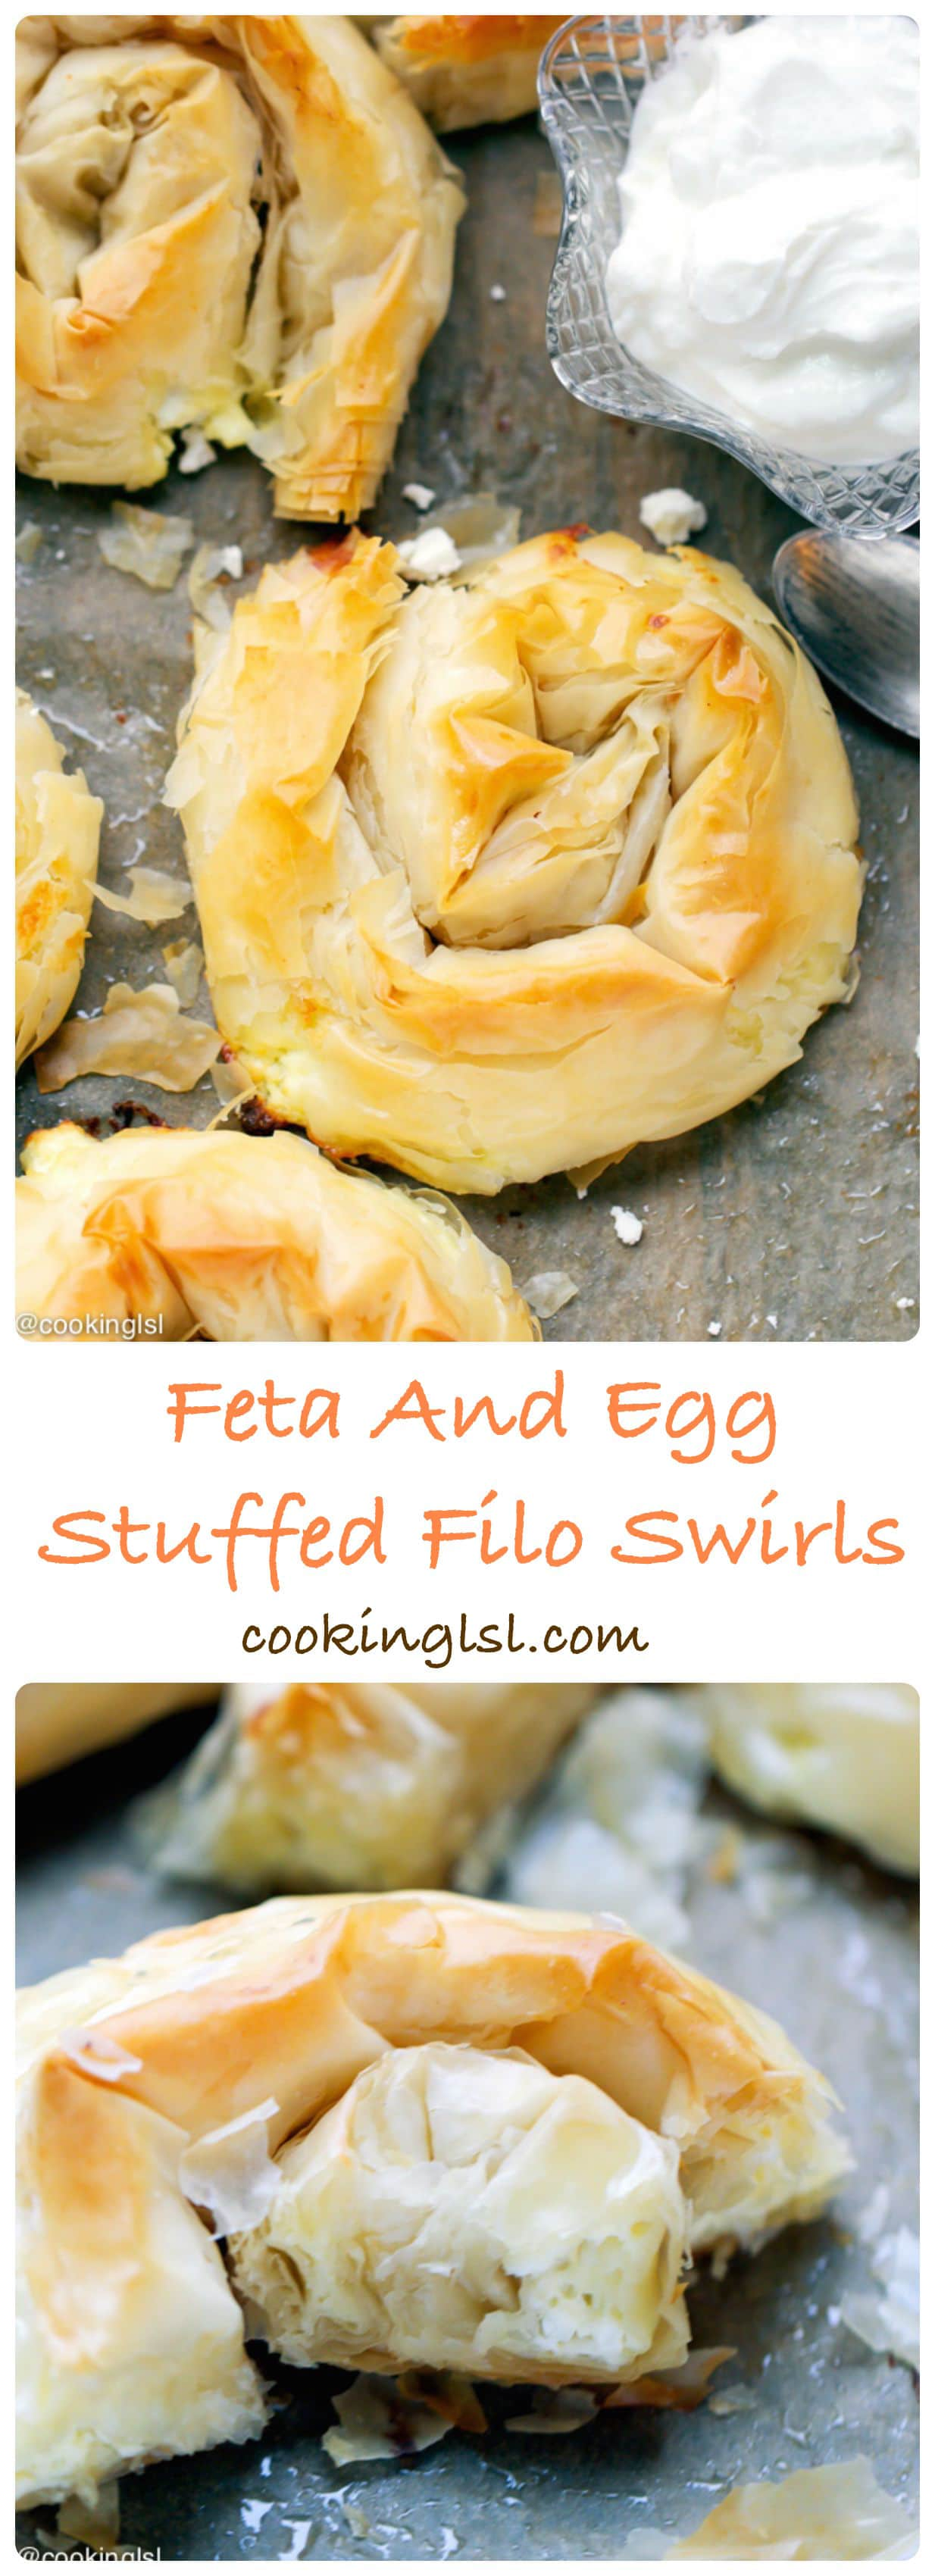 Phyllo {Filo} Swirls With Eggs And Feta - crunchy and delicious, so simple to make and one of my favorite treats.